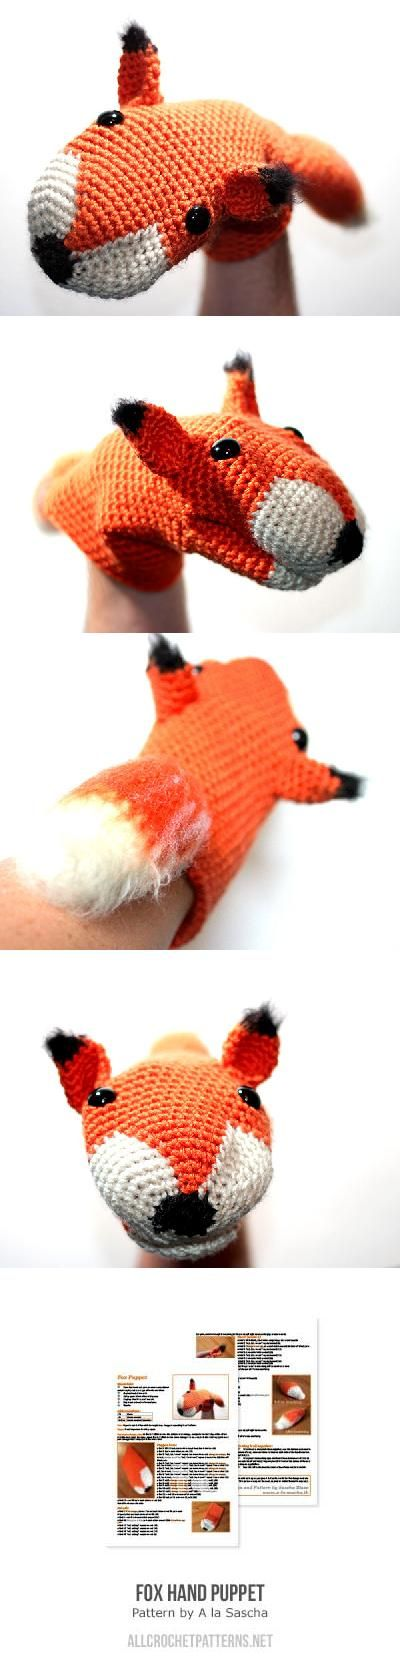 Fox Hand Puppet Crochet Pattern                                                                                                                                                      More